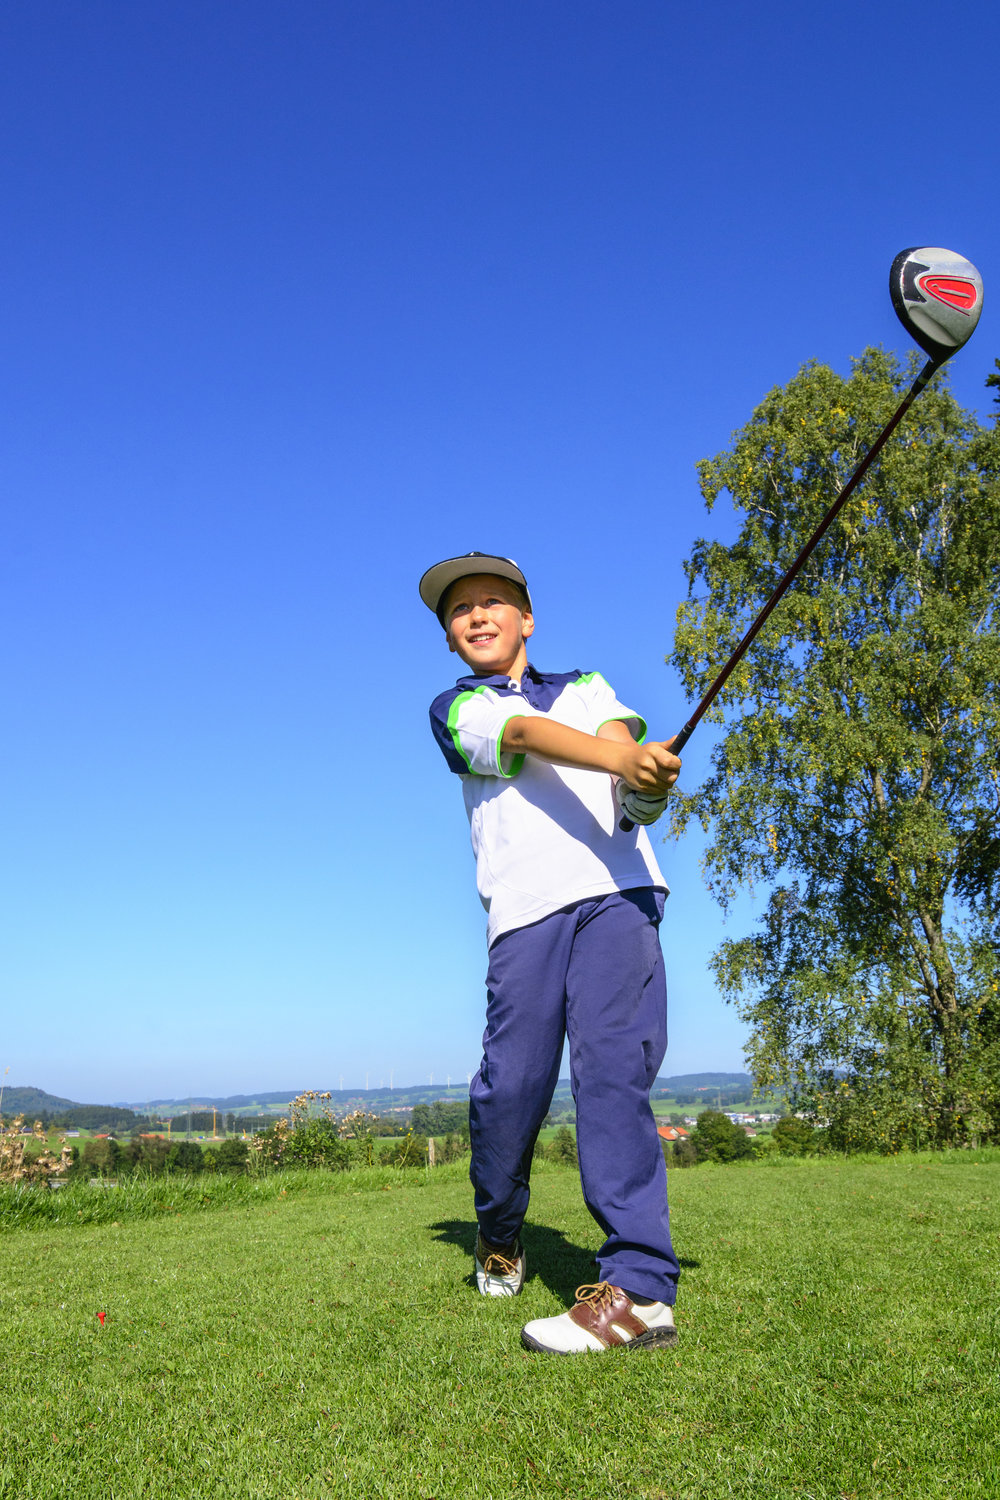 Junior Golf AdobeStock_118621114.jpeg